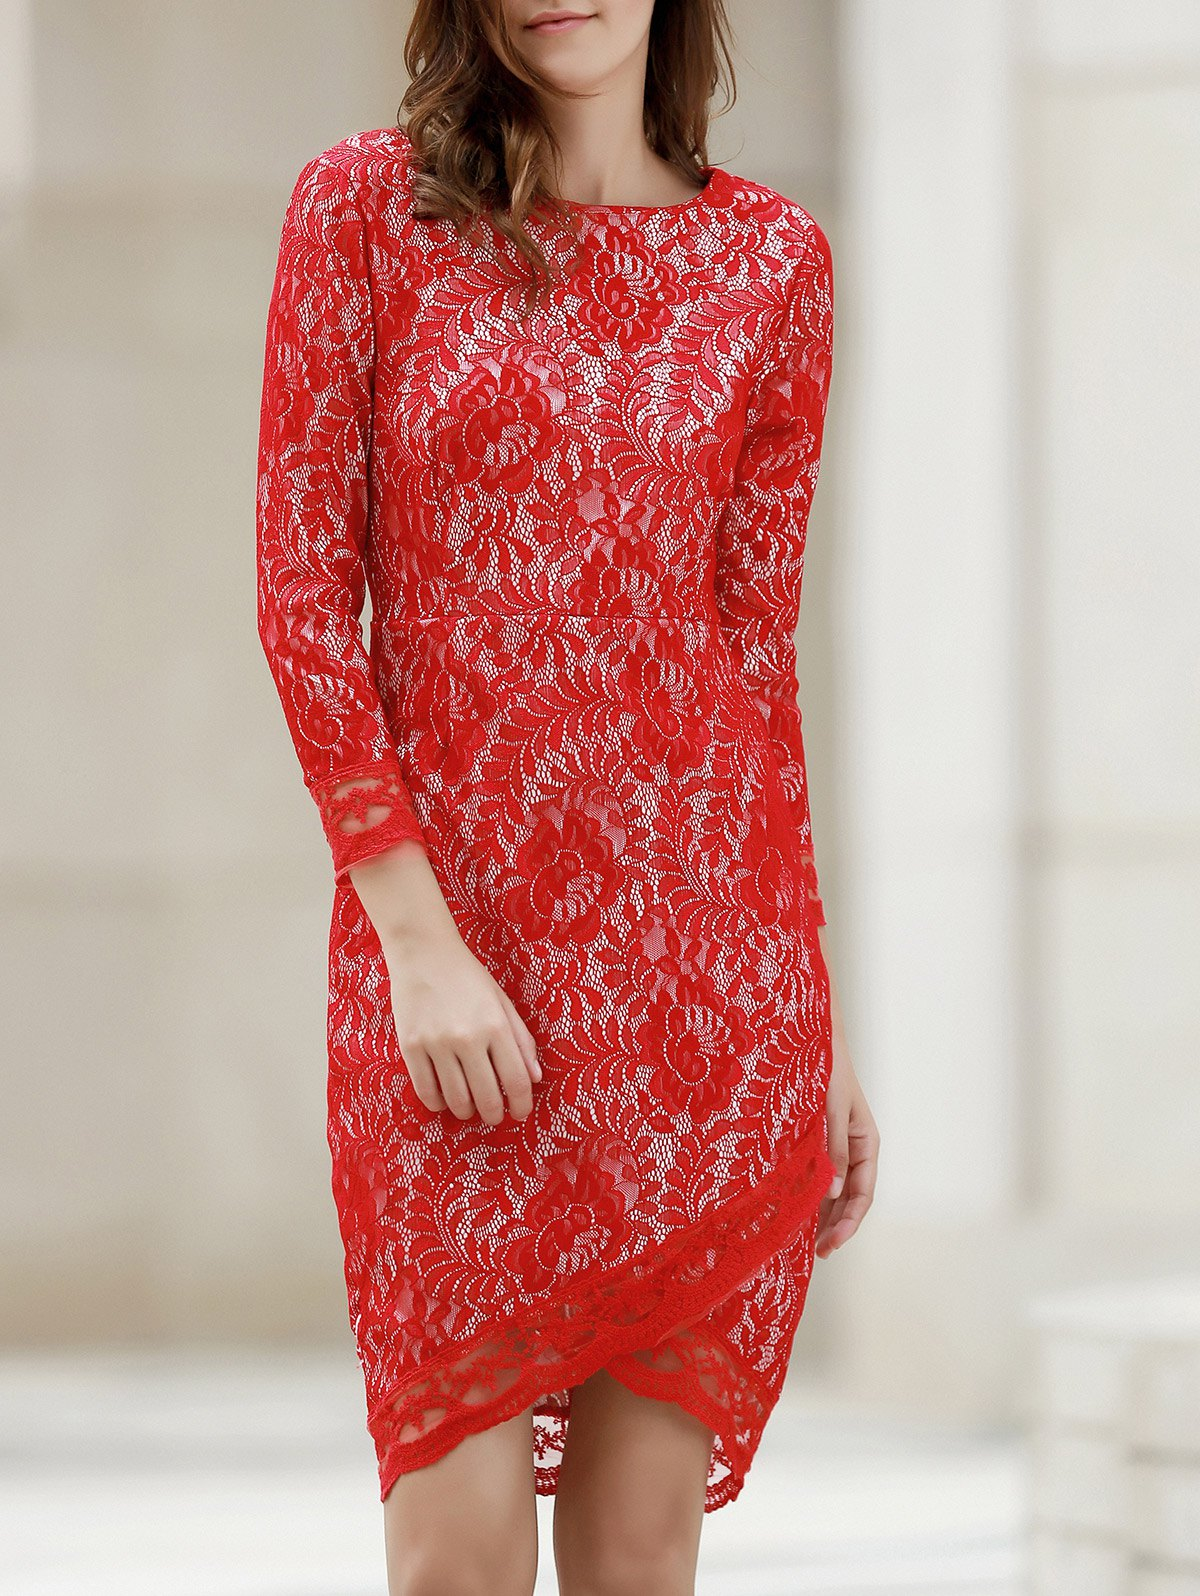 Chic Lace Long Sleeve Asymmetric Fitted Sheath Dress